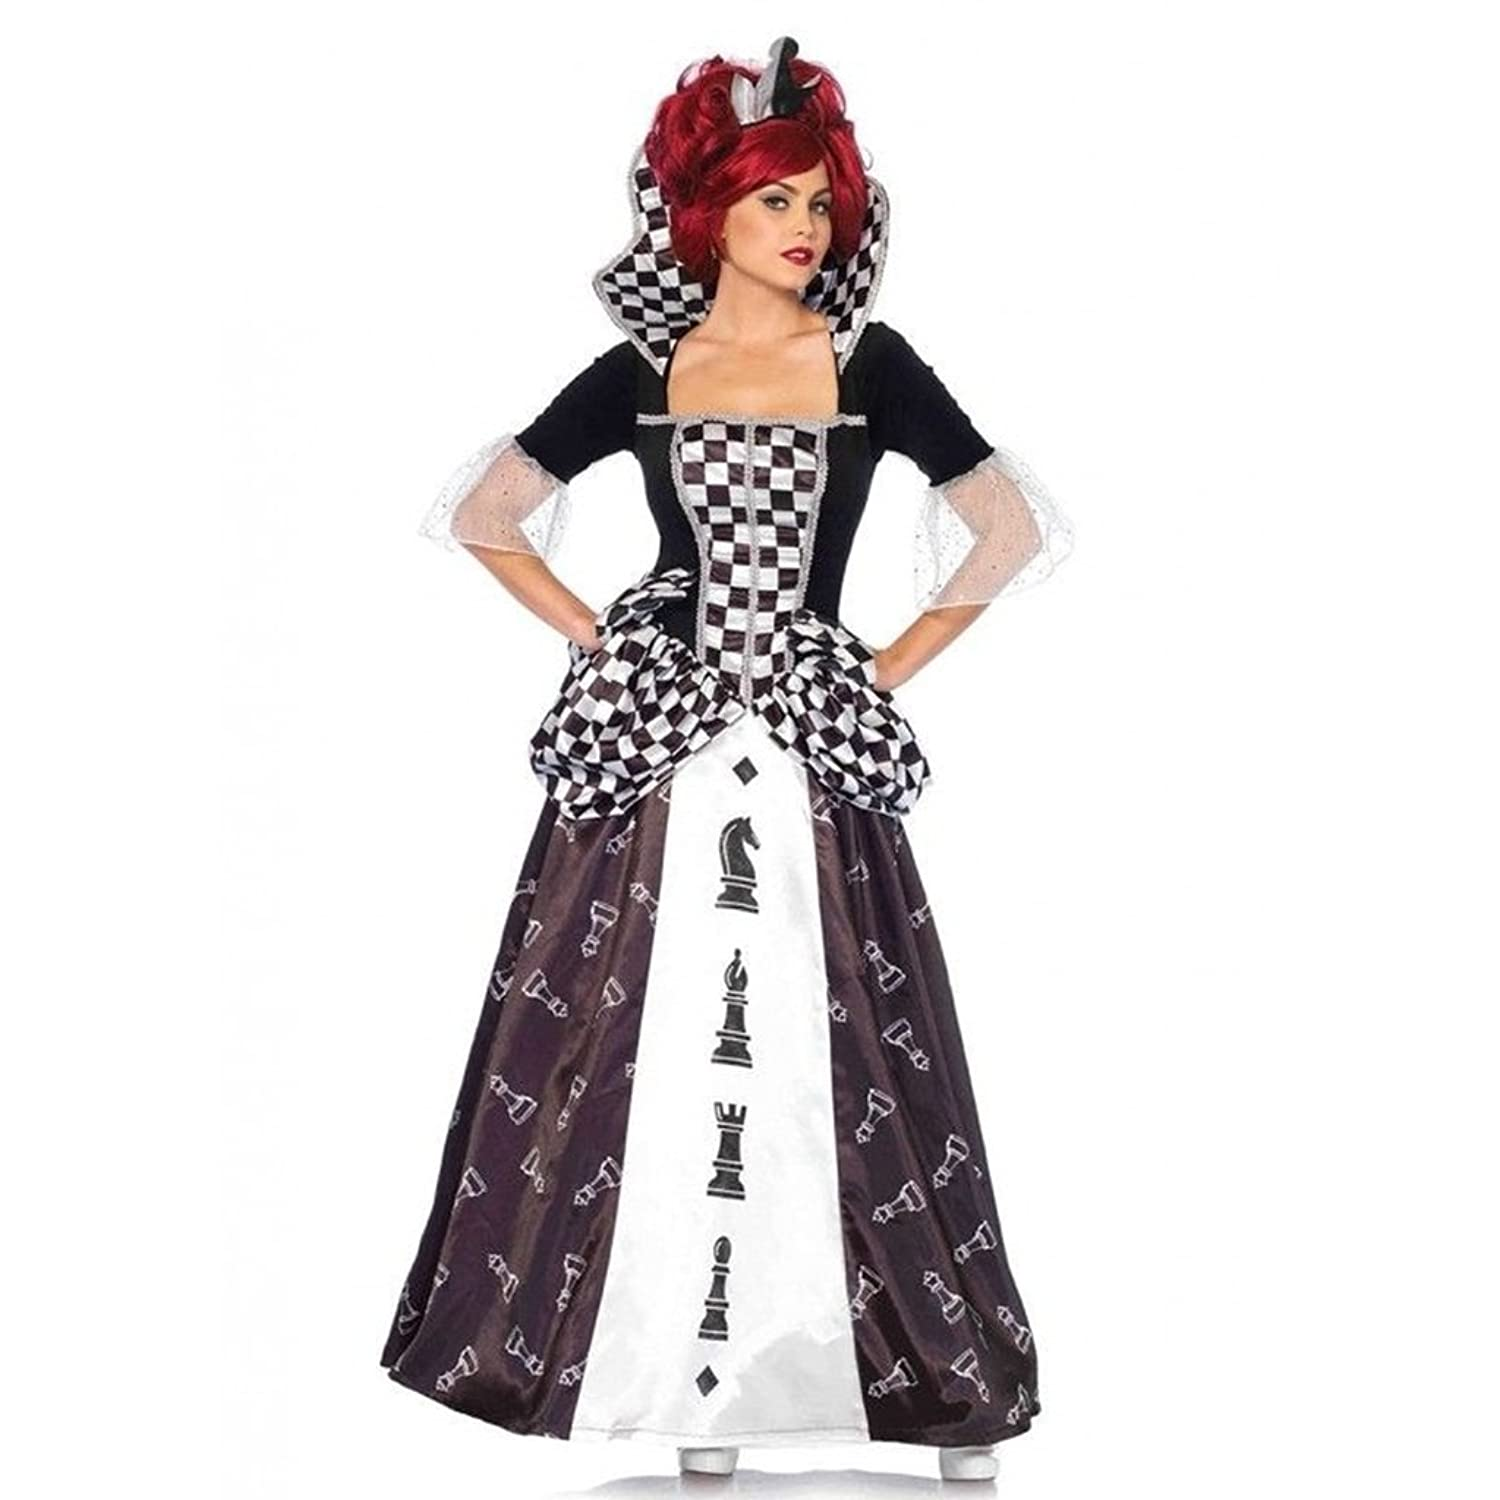 Alice Through the Looking Glass Adult Red Queen's Checkered Dress Outfit - DeluxeAdultCostumes.com